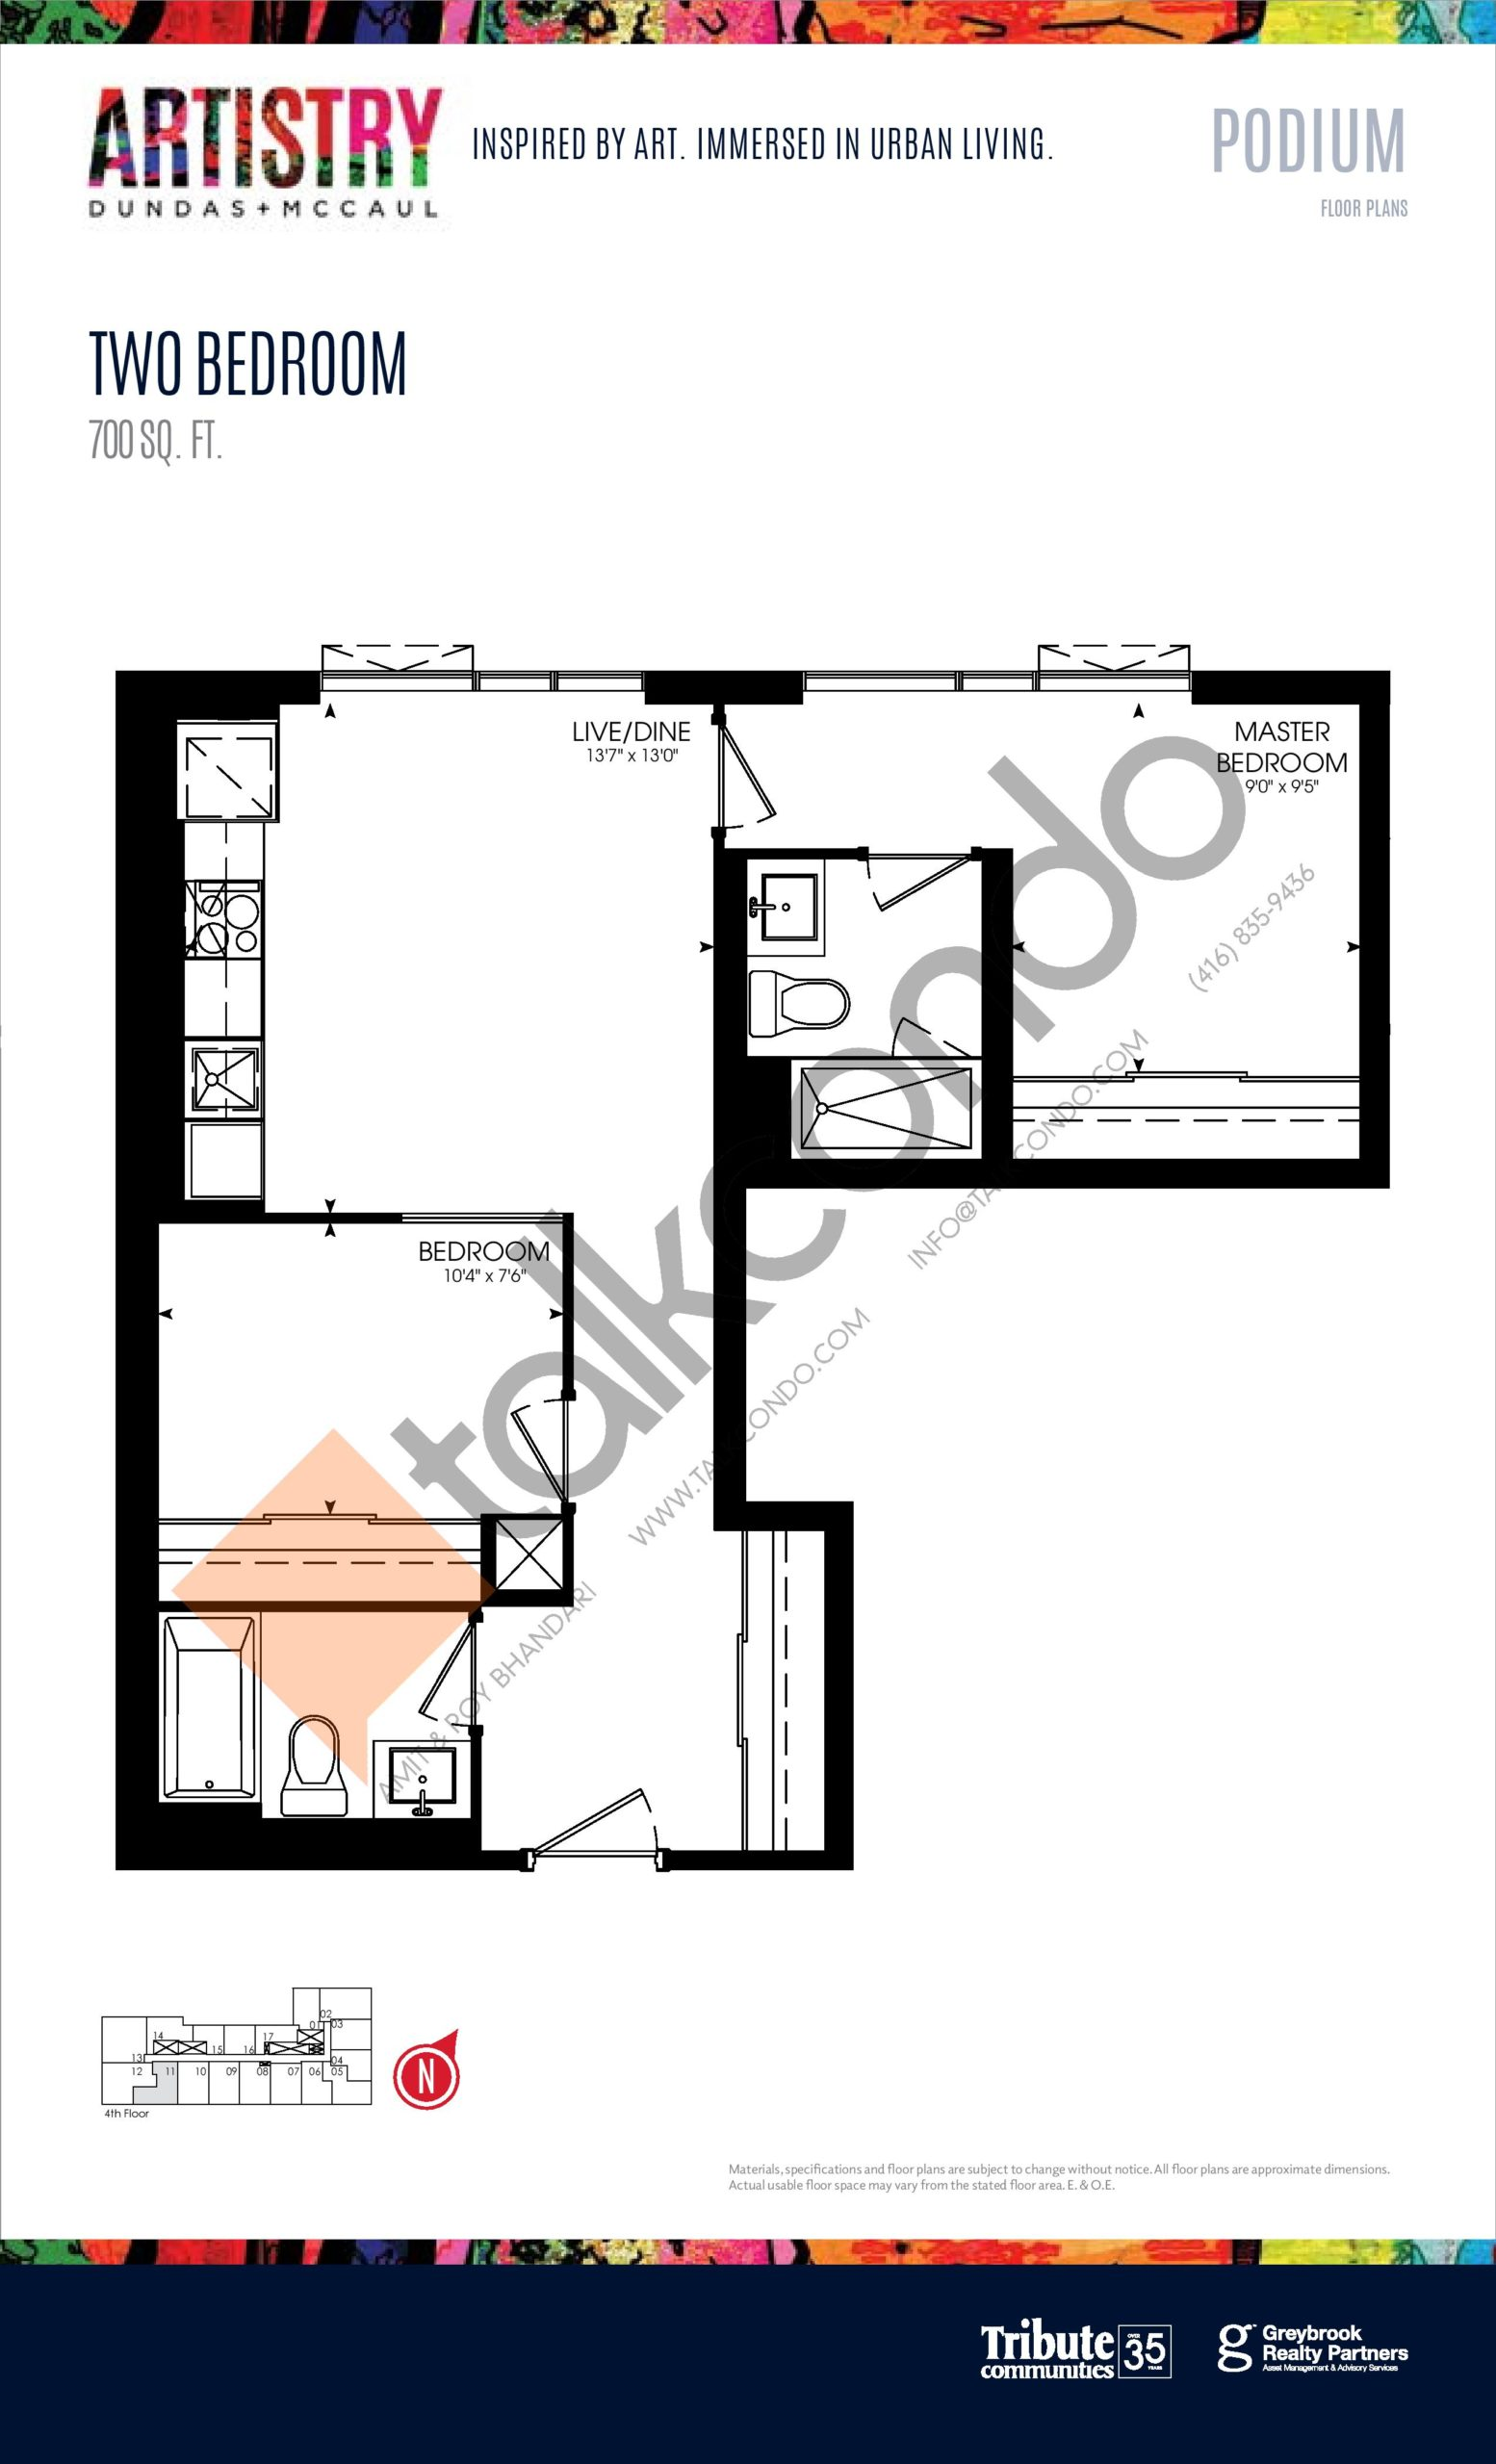 700 sq. ft. - Podium Floor Plan at Artistry Condos - 700 sq.ft